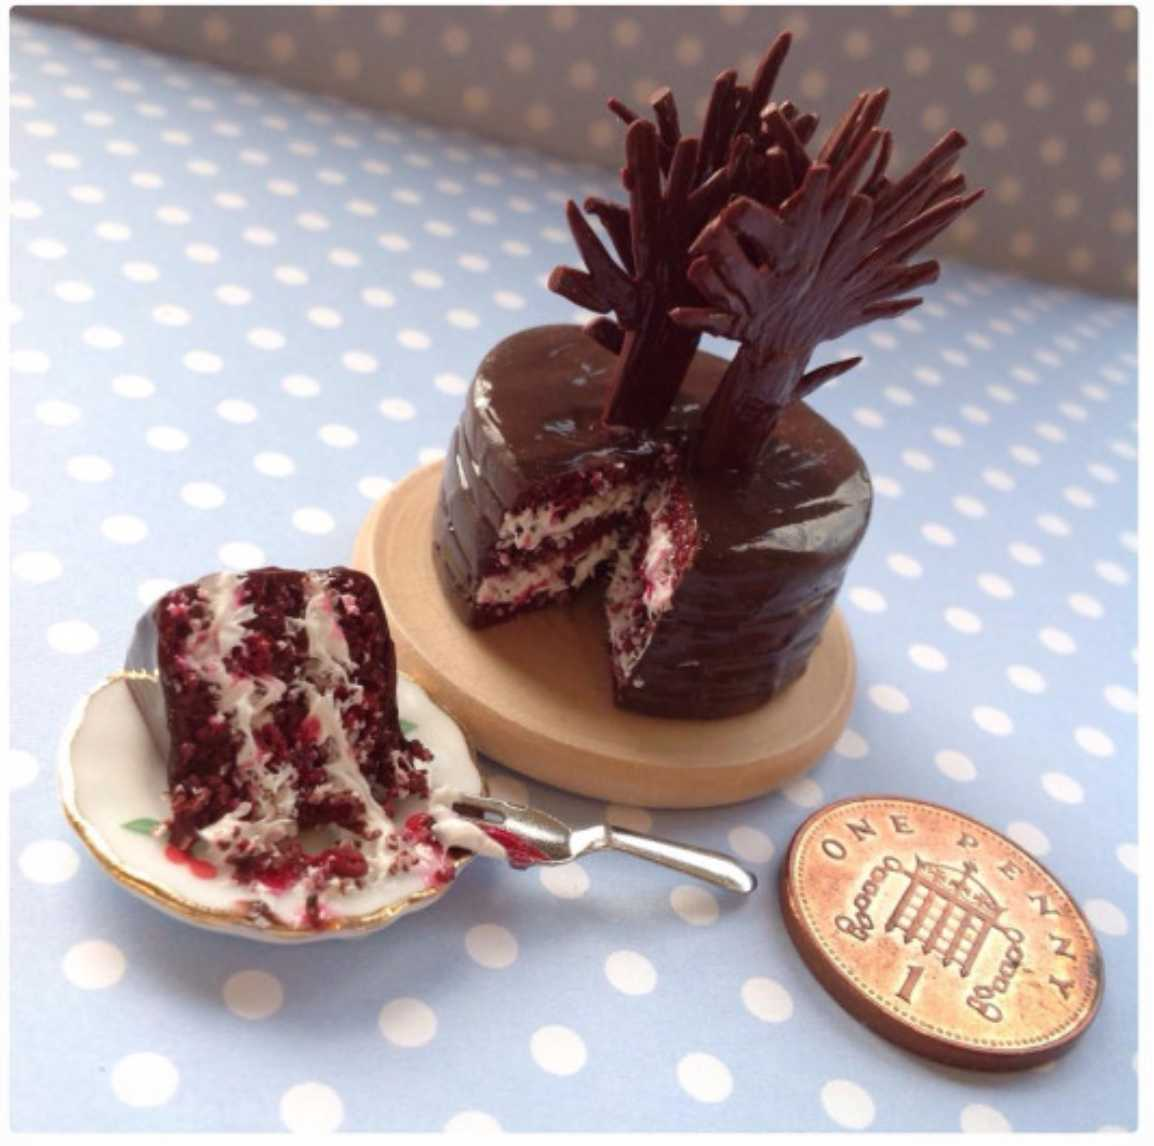 Marie's Black Forest Gateau